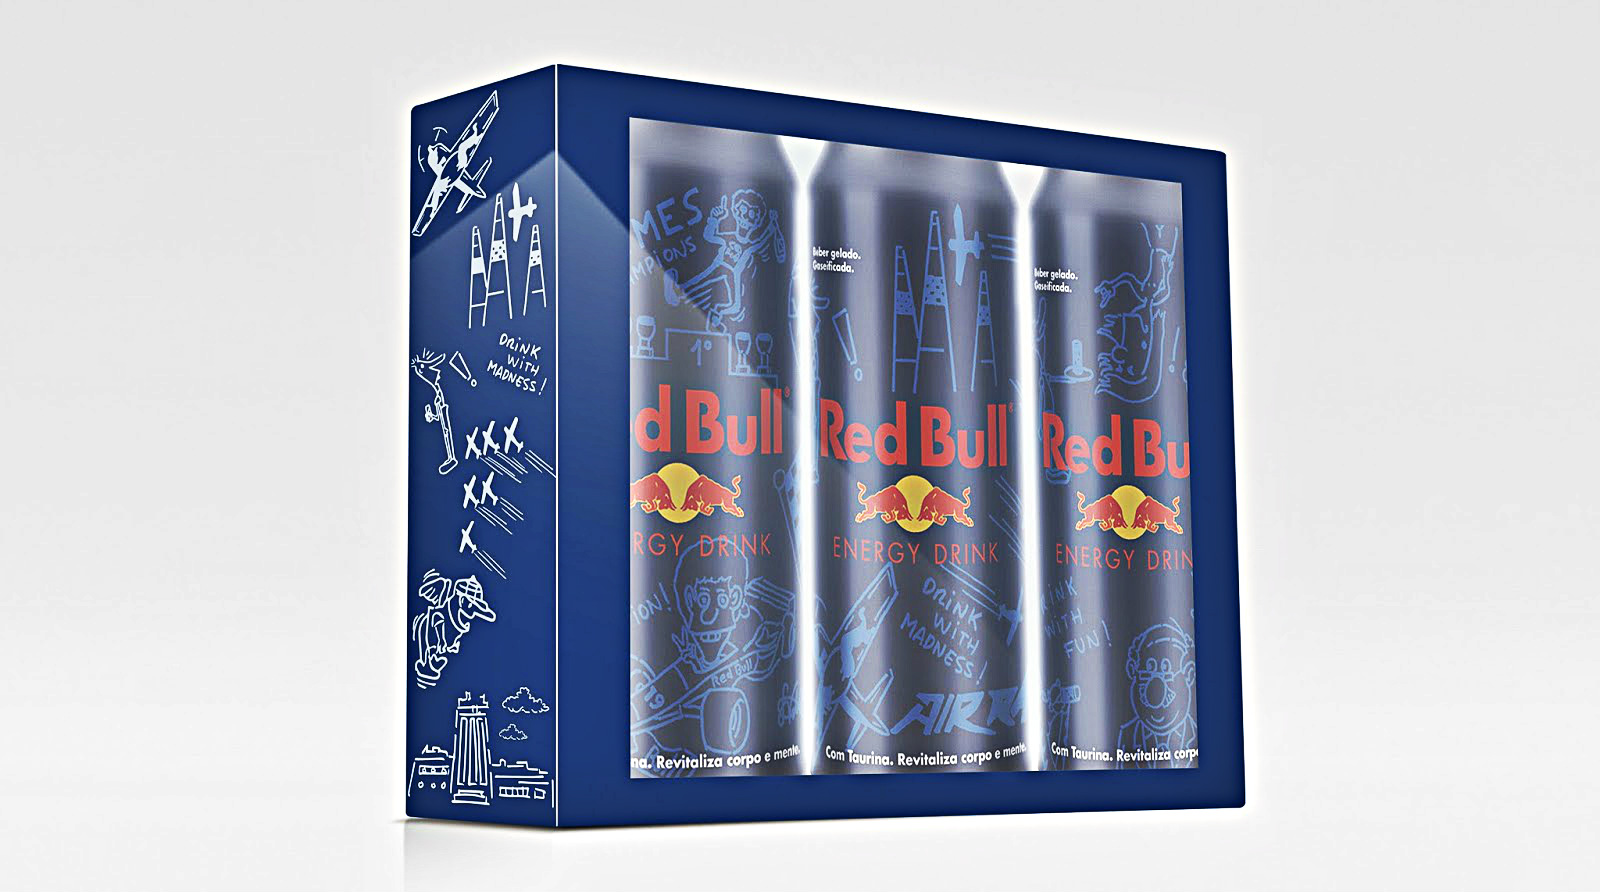 red bull product range Red bull energy drink is a functional beverage providing wings whenever you need them red bull energy drink - vitalizes body and mind.